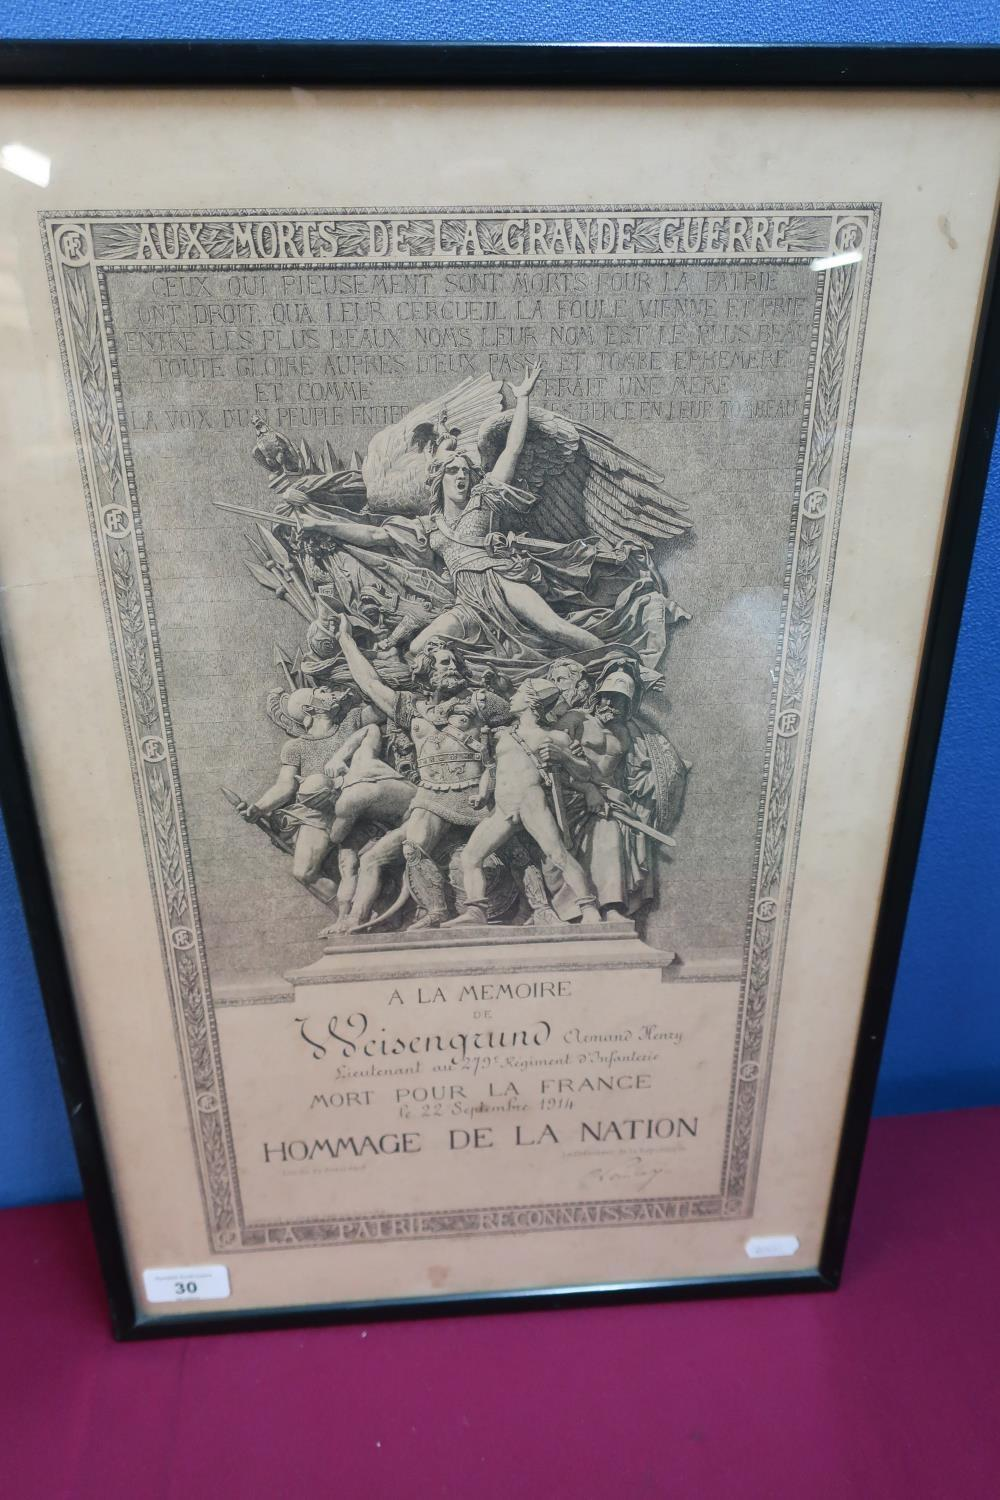 Lot 30 - Framed & mounted French A La Memoire for a Lieutenant in the 279 Regiment Infantry 22nd September